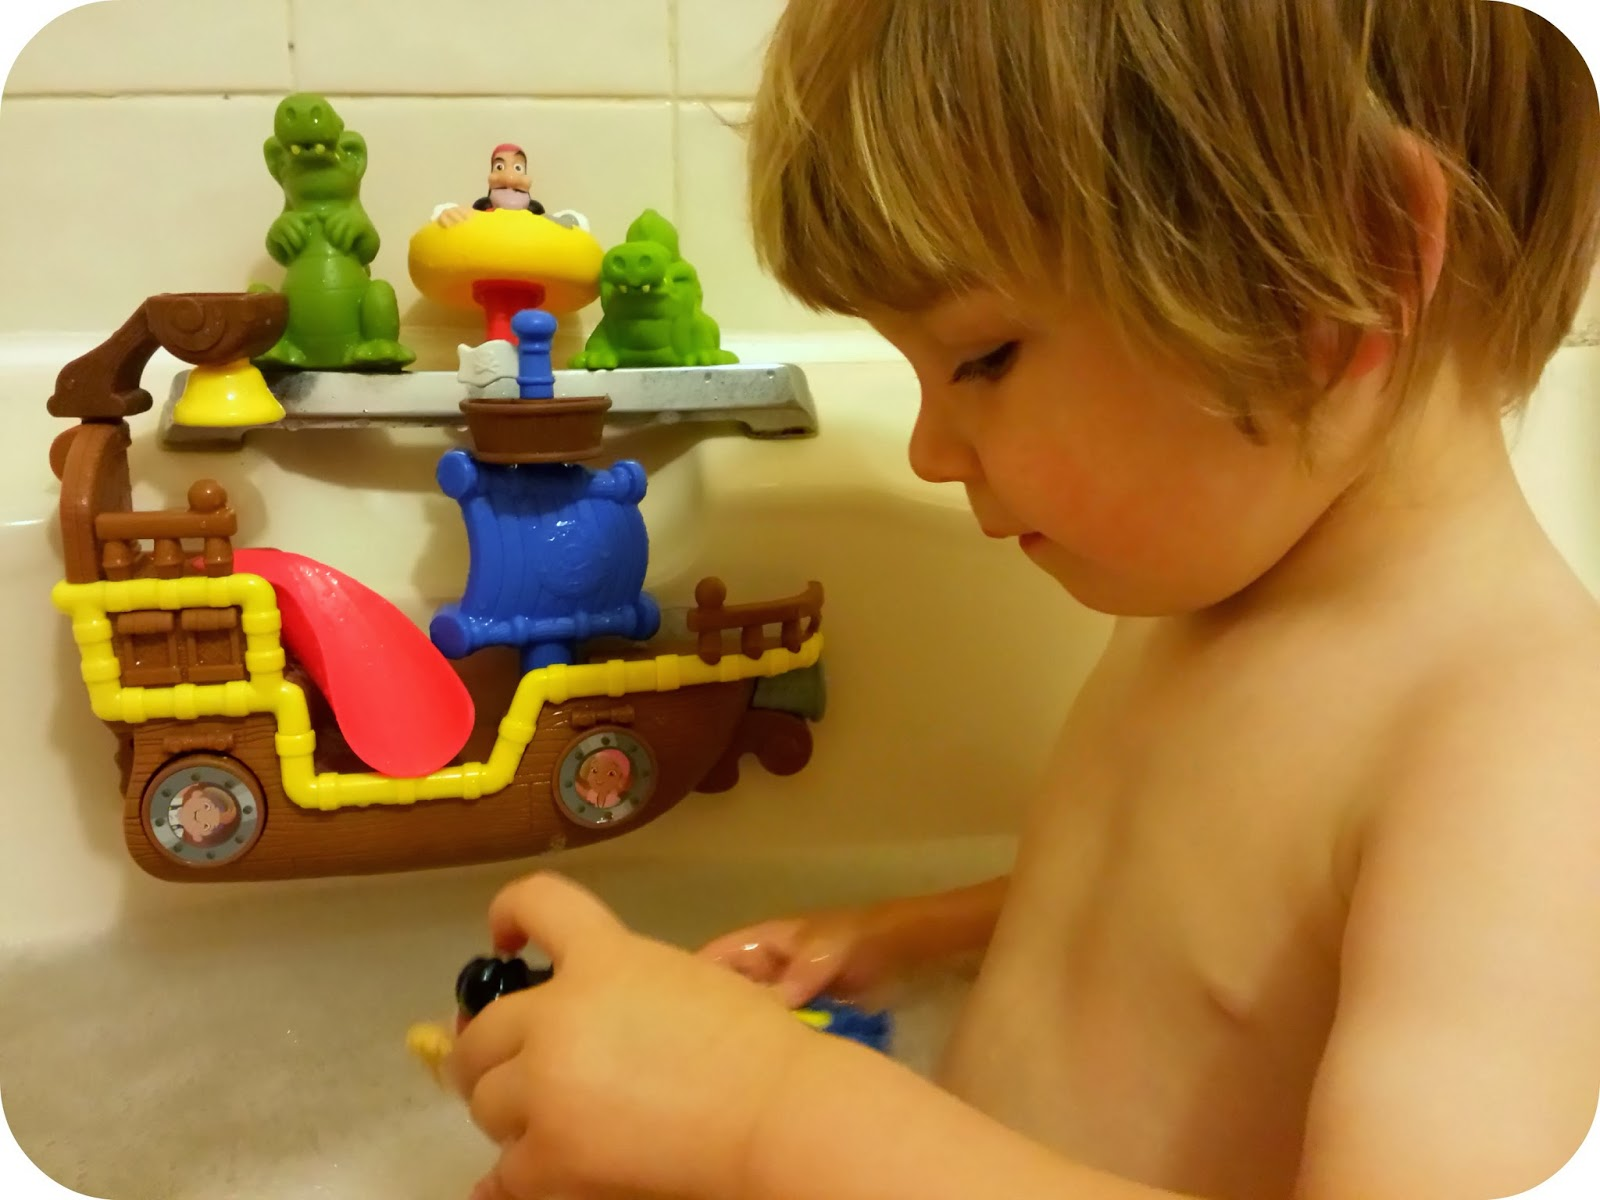 The Adventure of Parenthood: Jake and the Neverland Pirates Toy Review